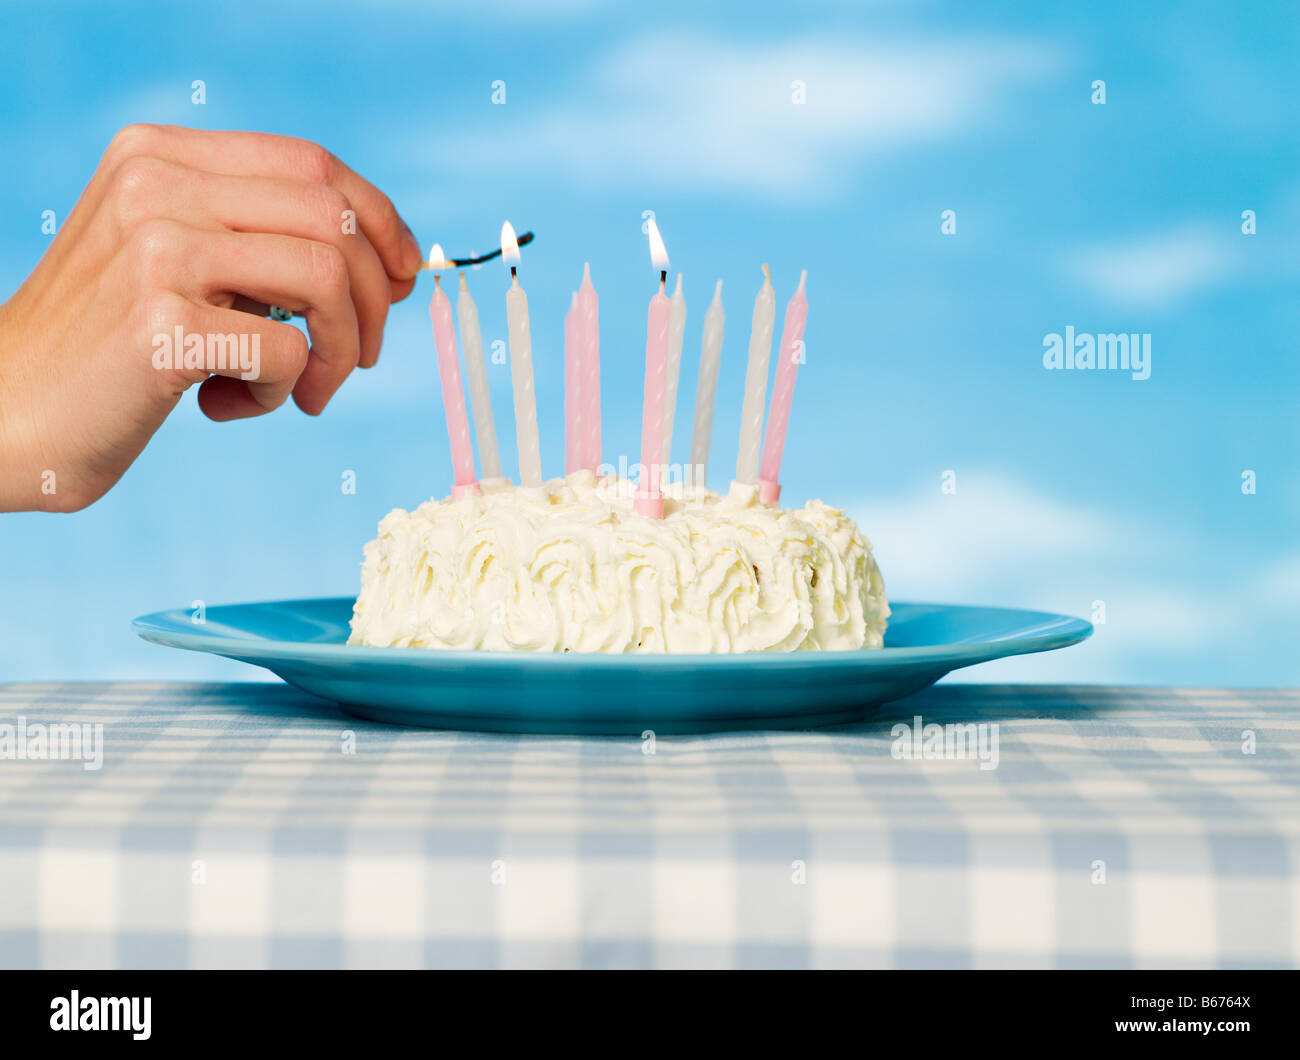 A person lighting matches on a cake - Stock Image